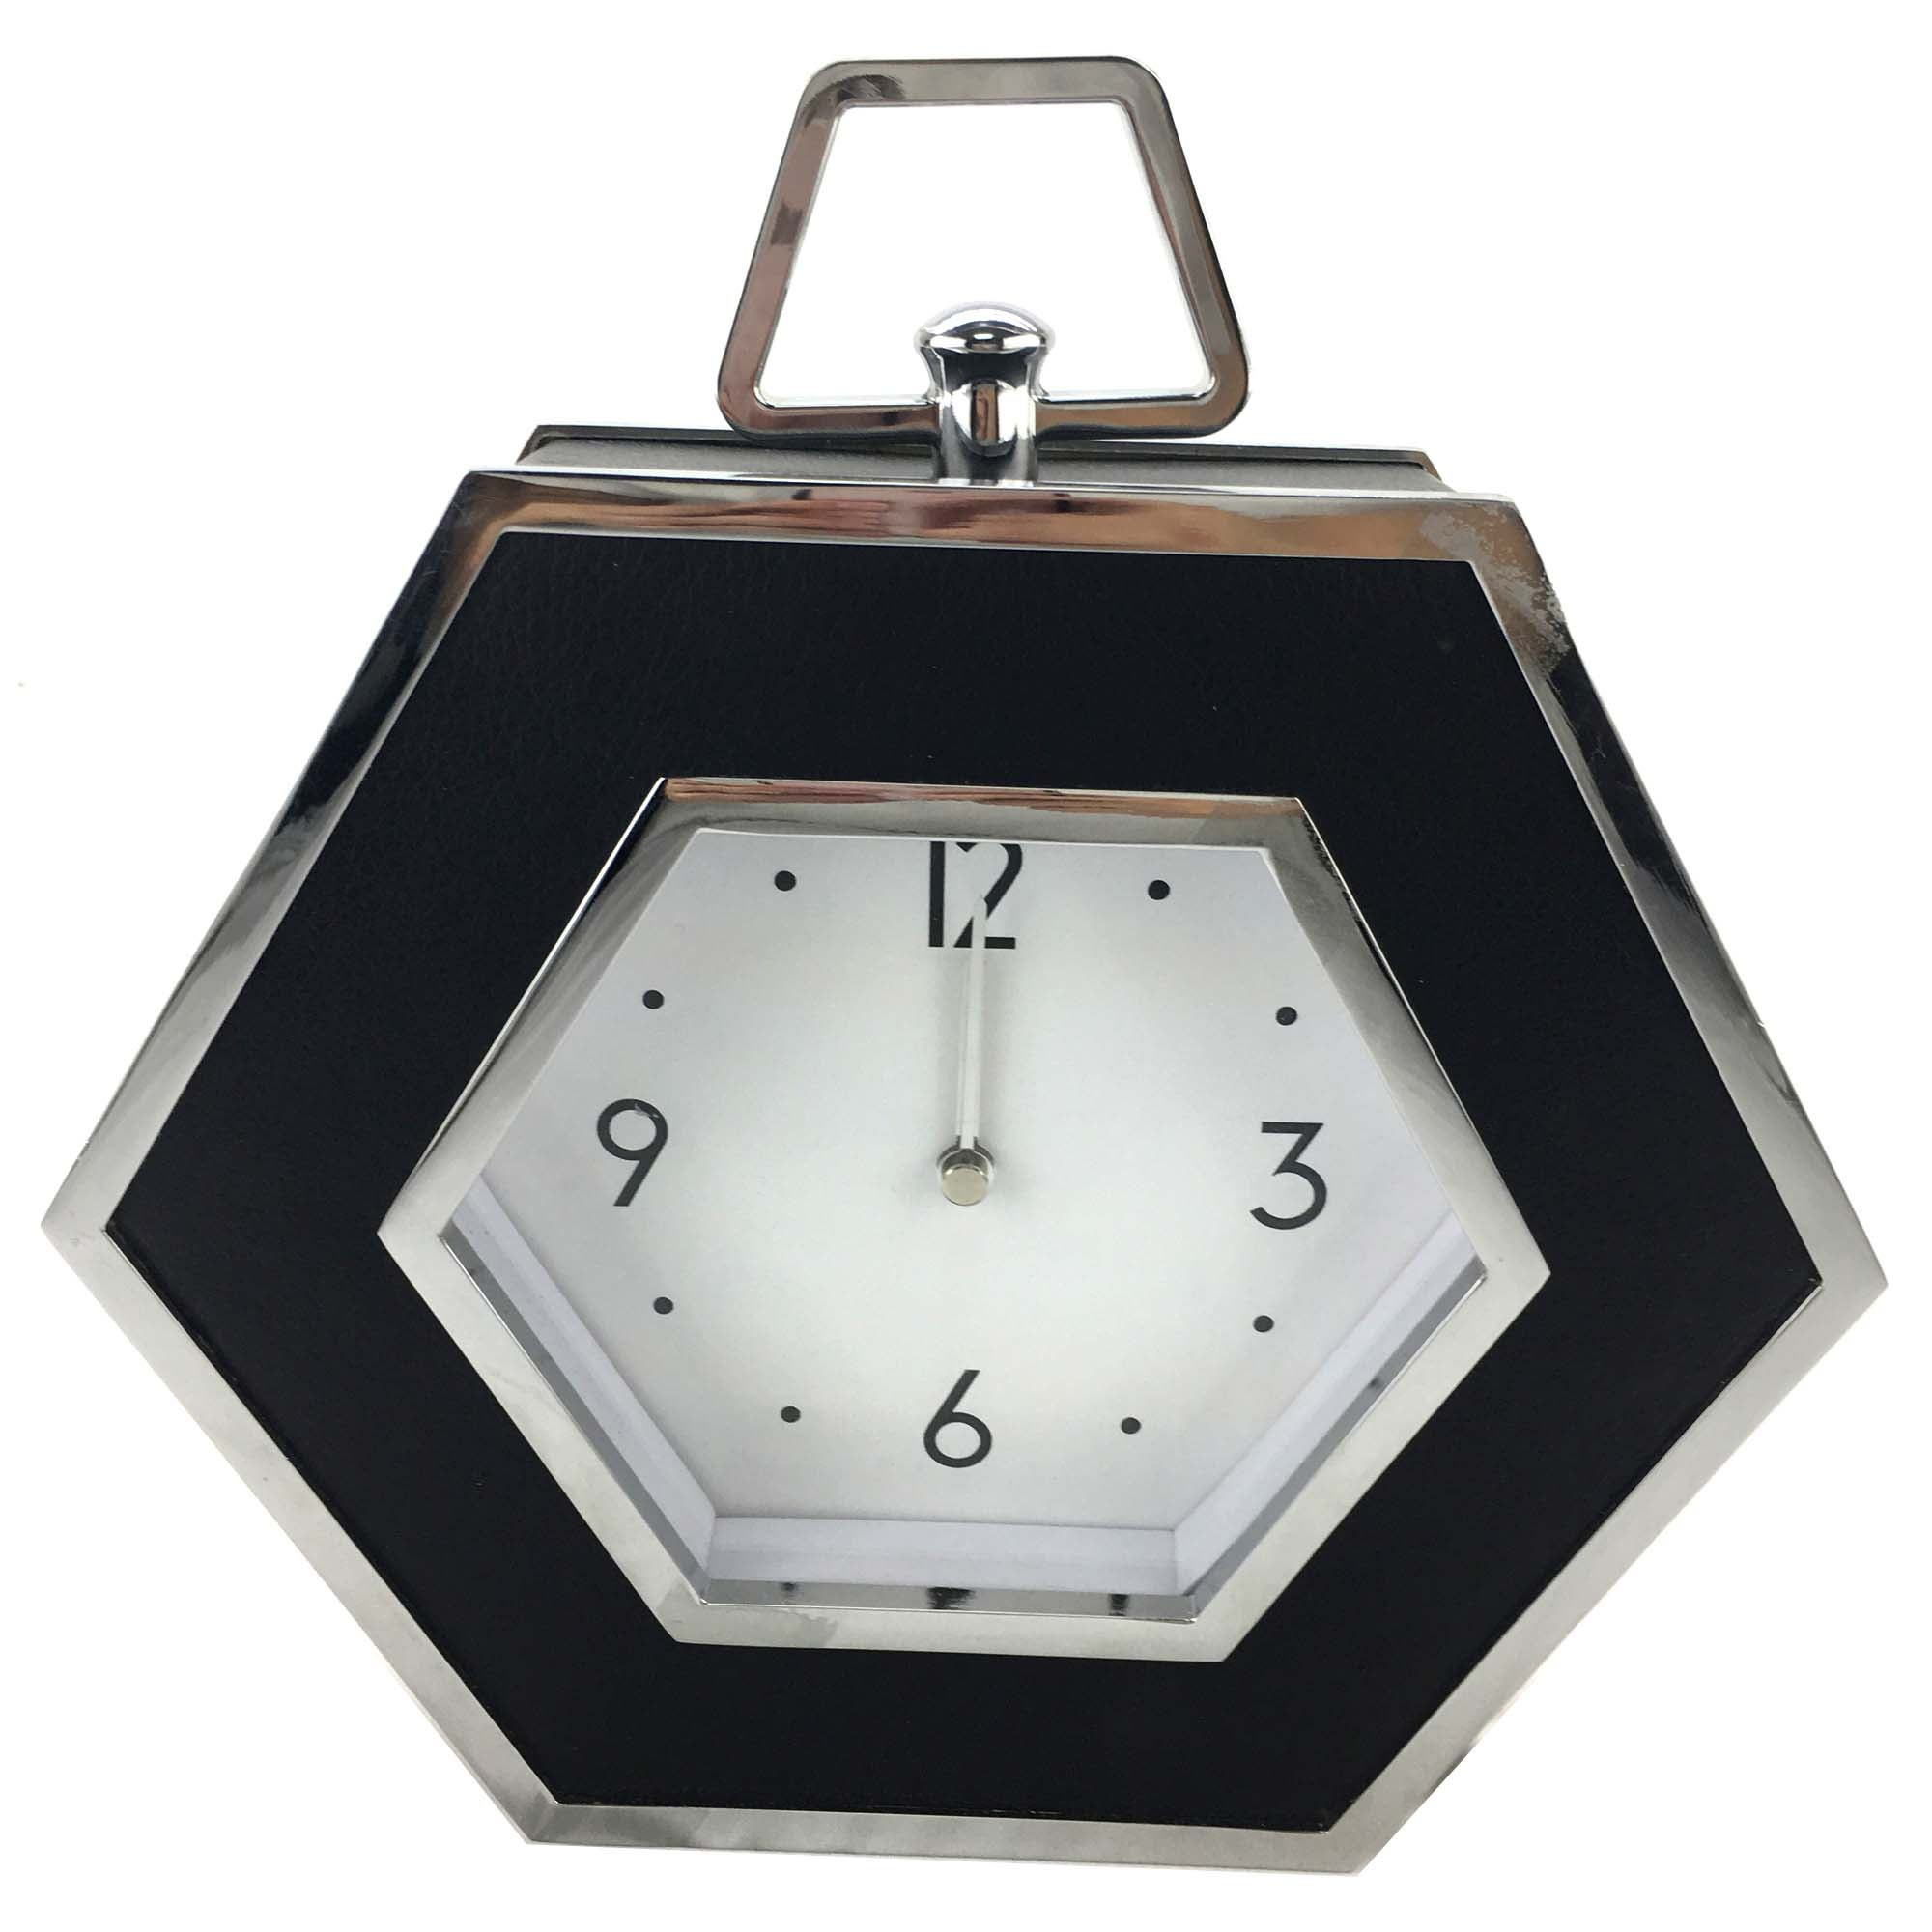 Image of 5A Fifth Avenue Black Faux Leather Mantle Clock Black